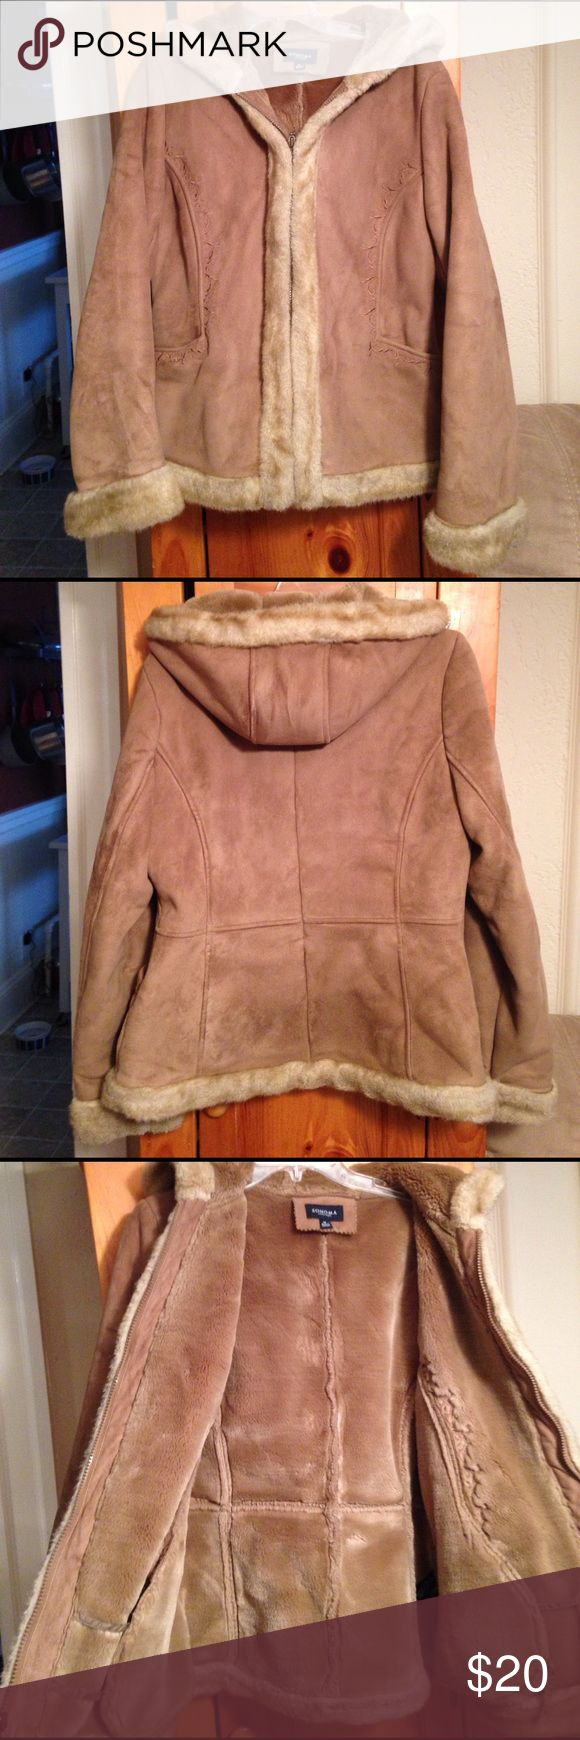 SONOMA FAUX FUR HOODED COAT Women's M Excellent pre-owned condition SUPER CUTE & WARM faux fur hooded jacket coat by SONOMA. Size women's M. Polyester/acrylic blend. Two outer pockets. Full front zip closure. NO FLAWS! Sonoma Jackets & Coats